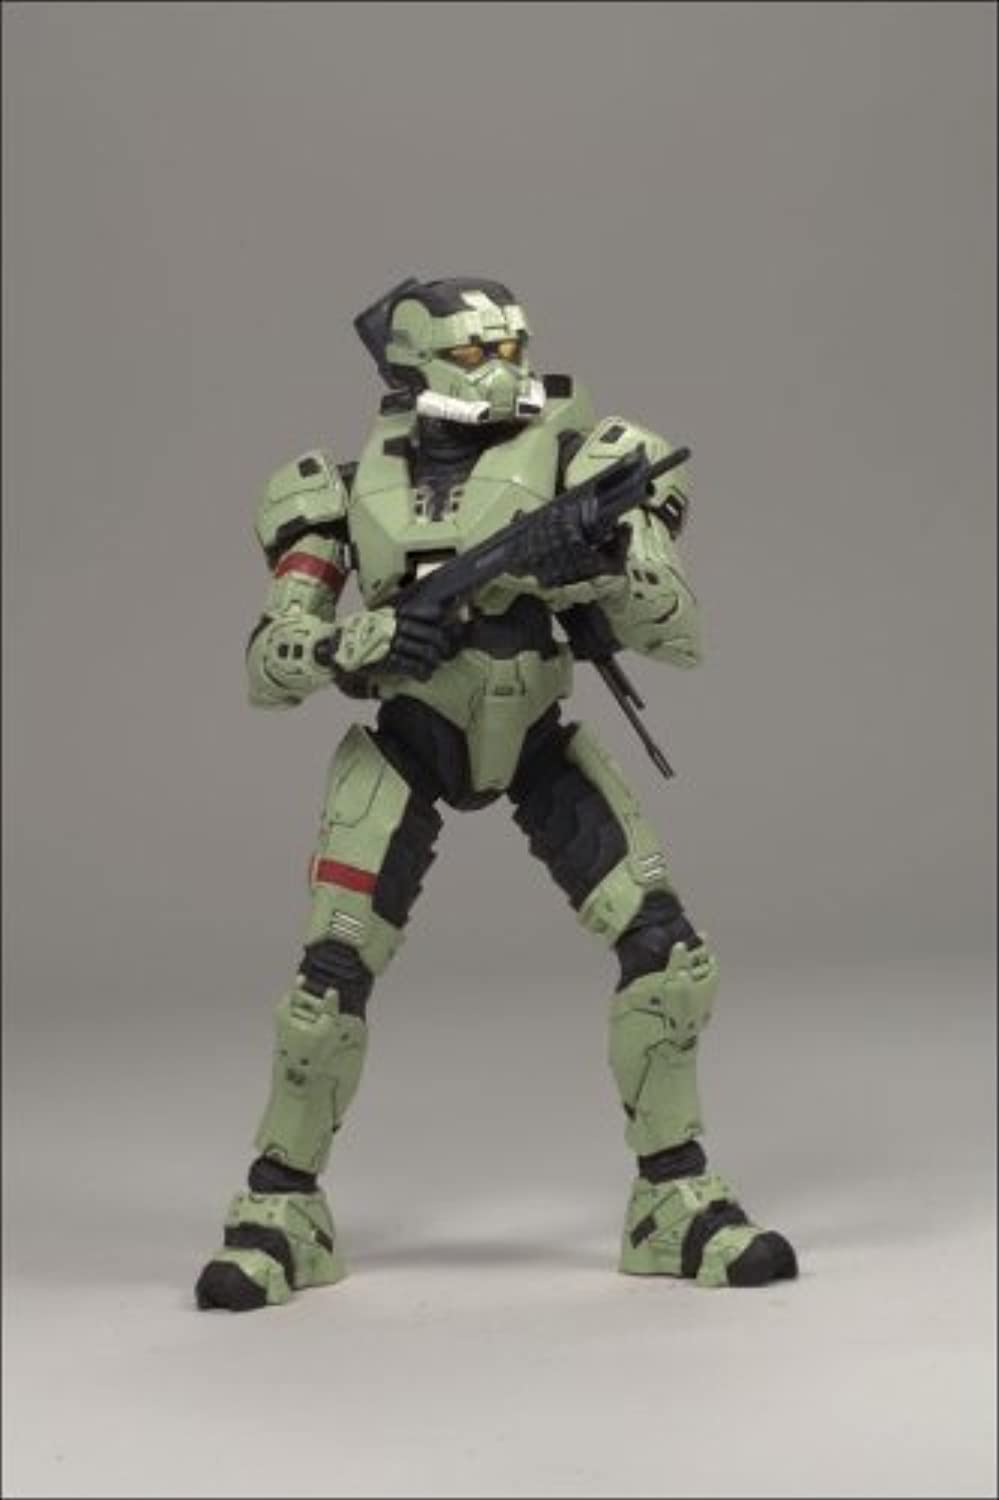 Halo 3 Series Spartan EOD 2 Soldier nnmfrd4727-new toys - airplane